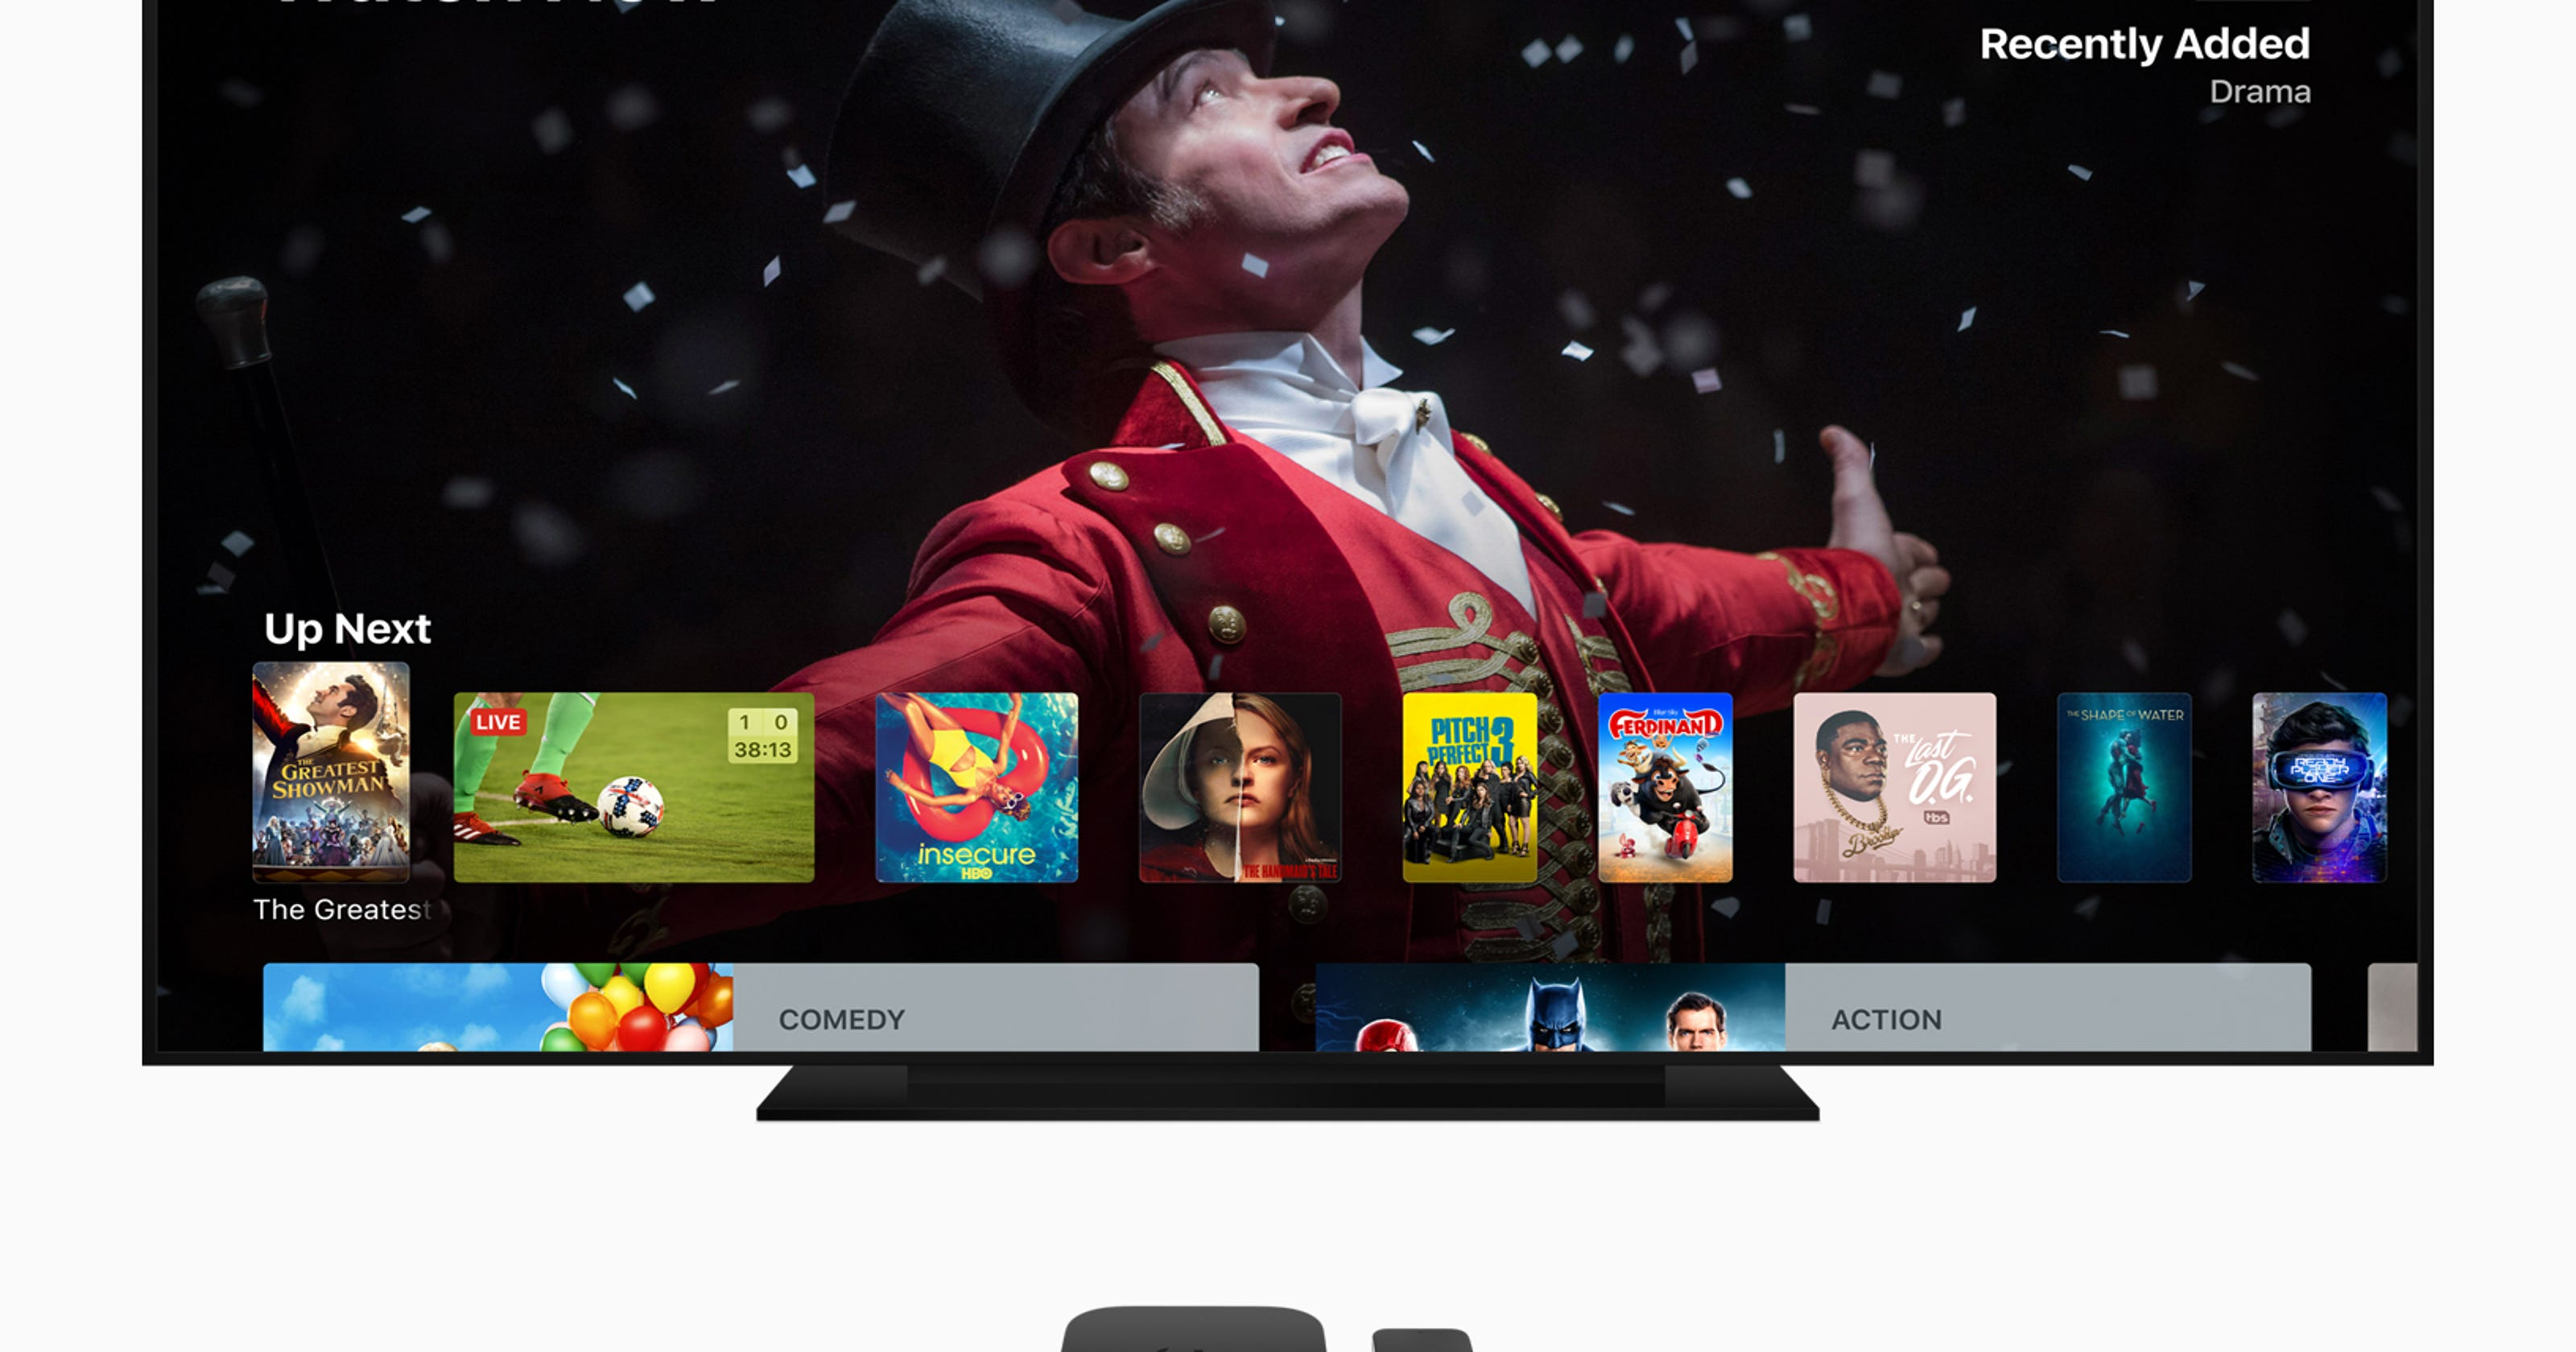 News, entertainment, music, iCloud—are you ready to spend $40 monthly with Apple?